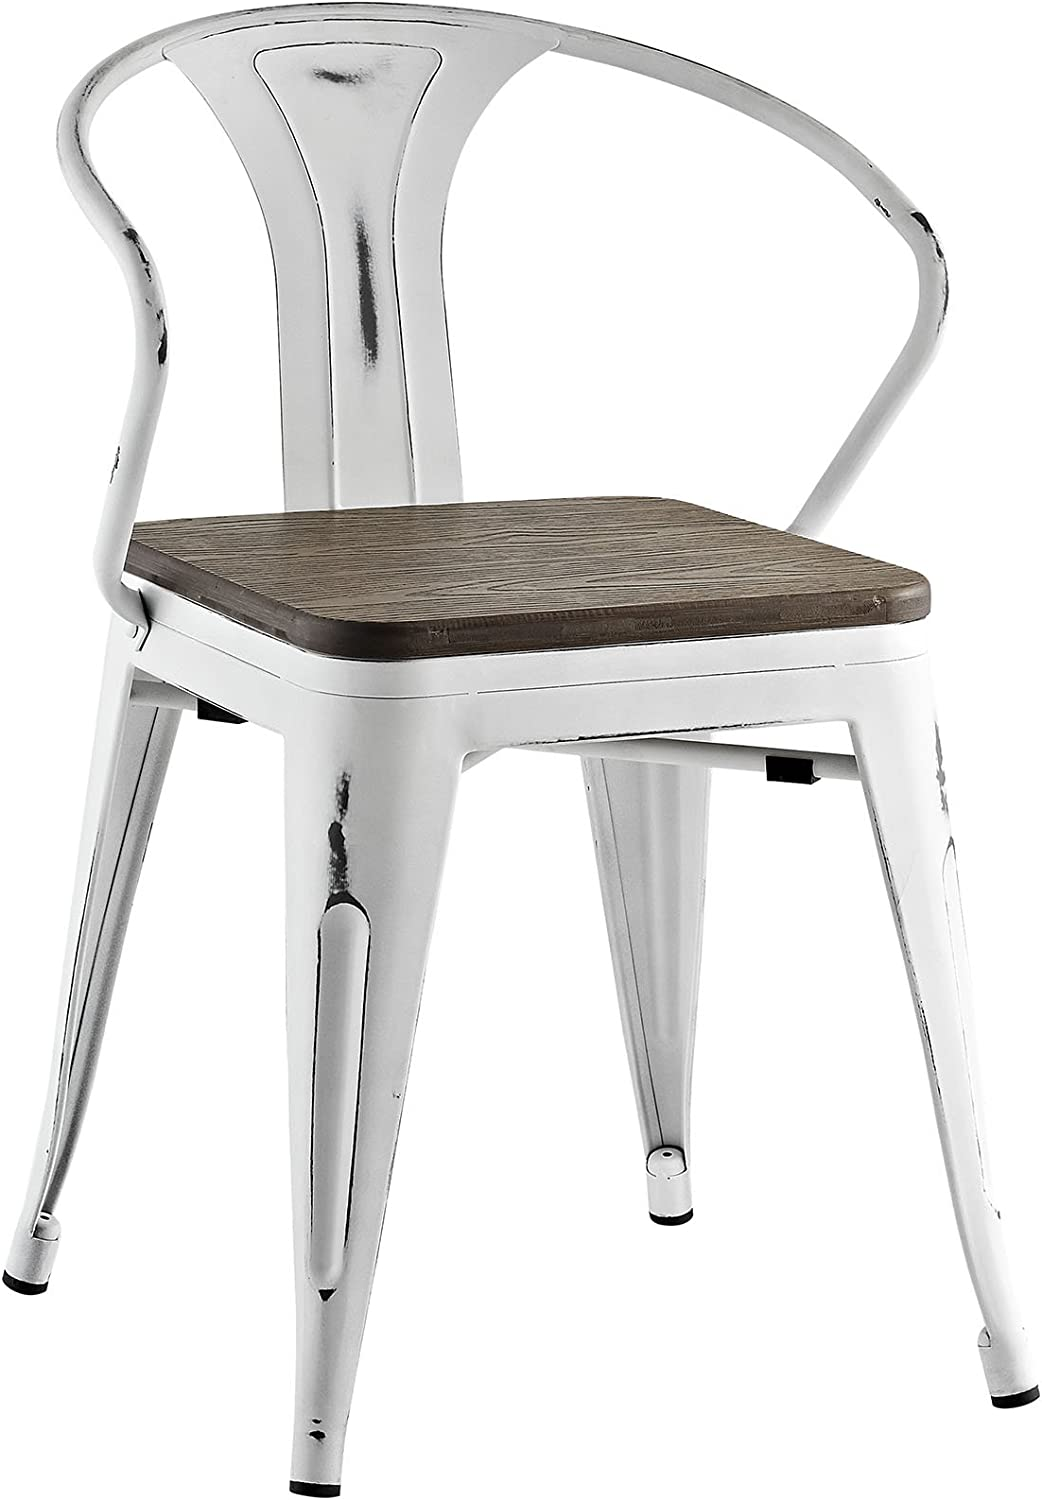 Modway EEI-2030-WHI Promenade Dining Chair in White